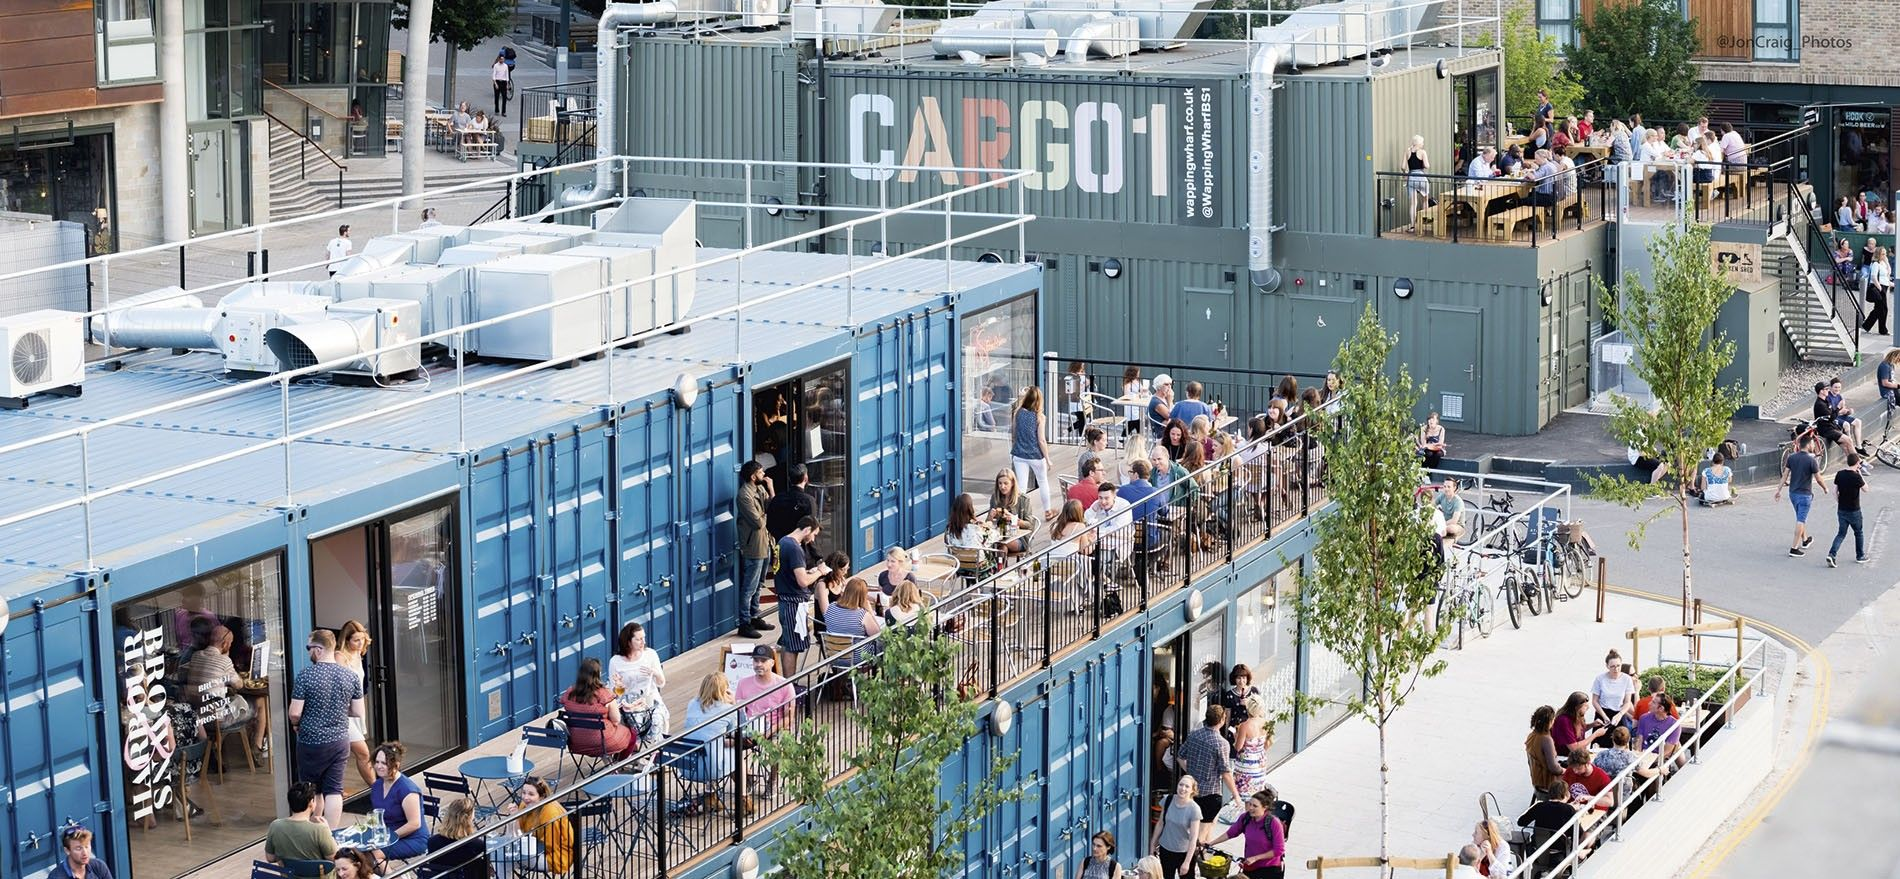 Cargo 1 at Wapping Wharf,a two-storey retail yard of repurposed shipping containers.